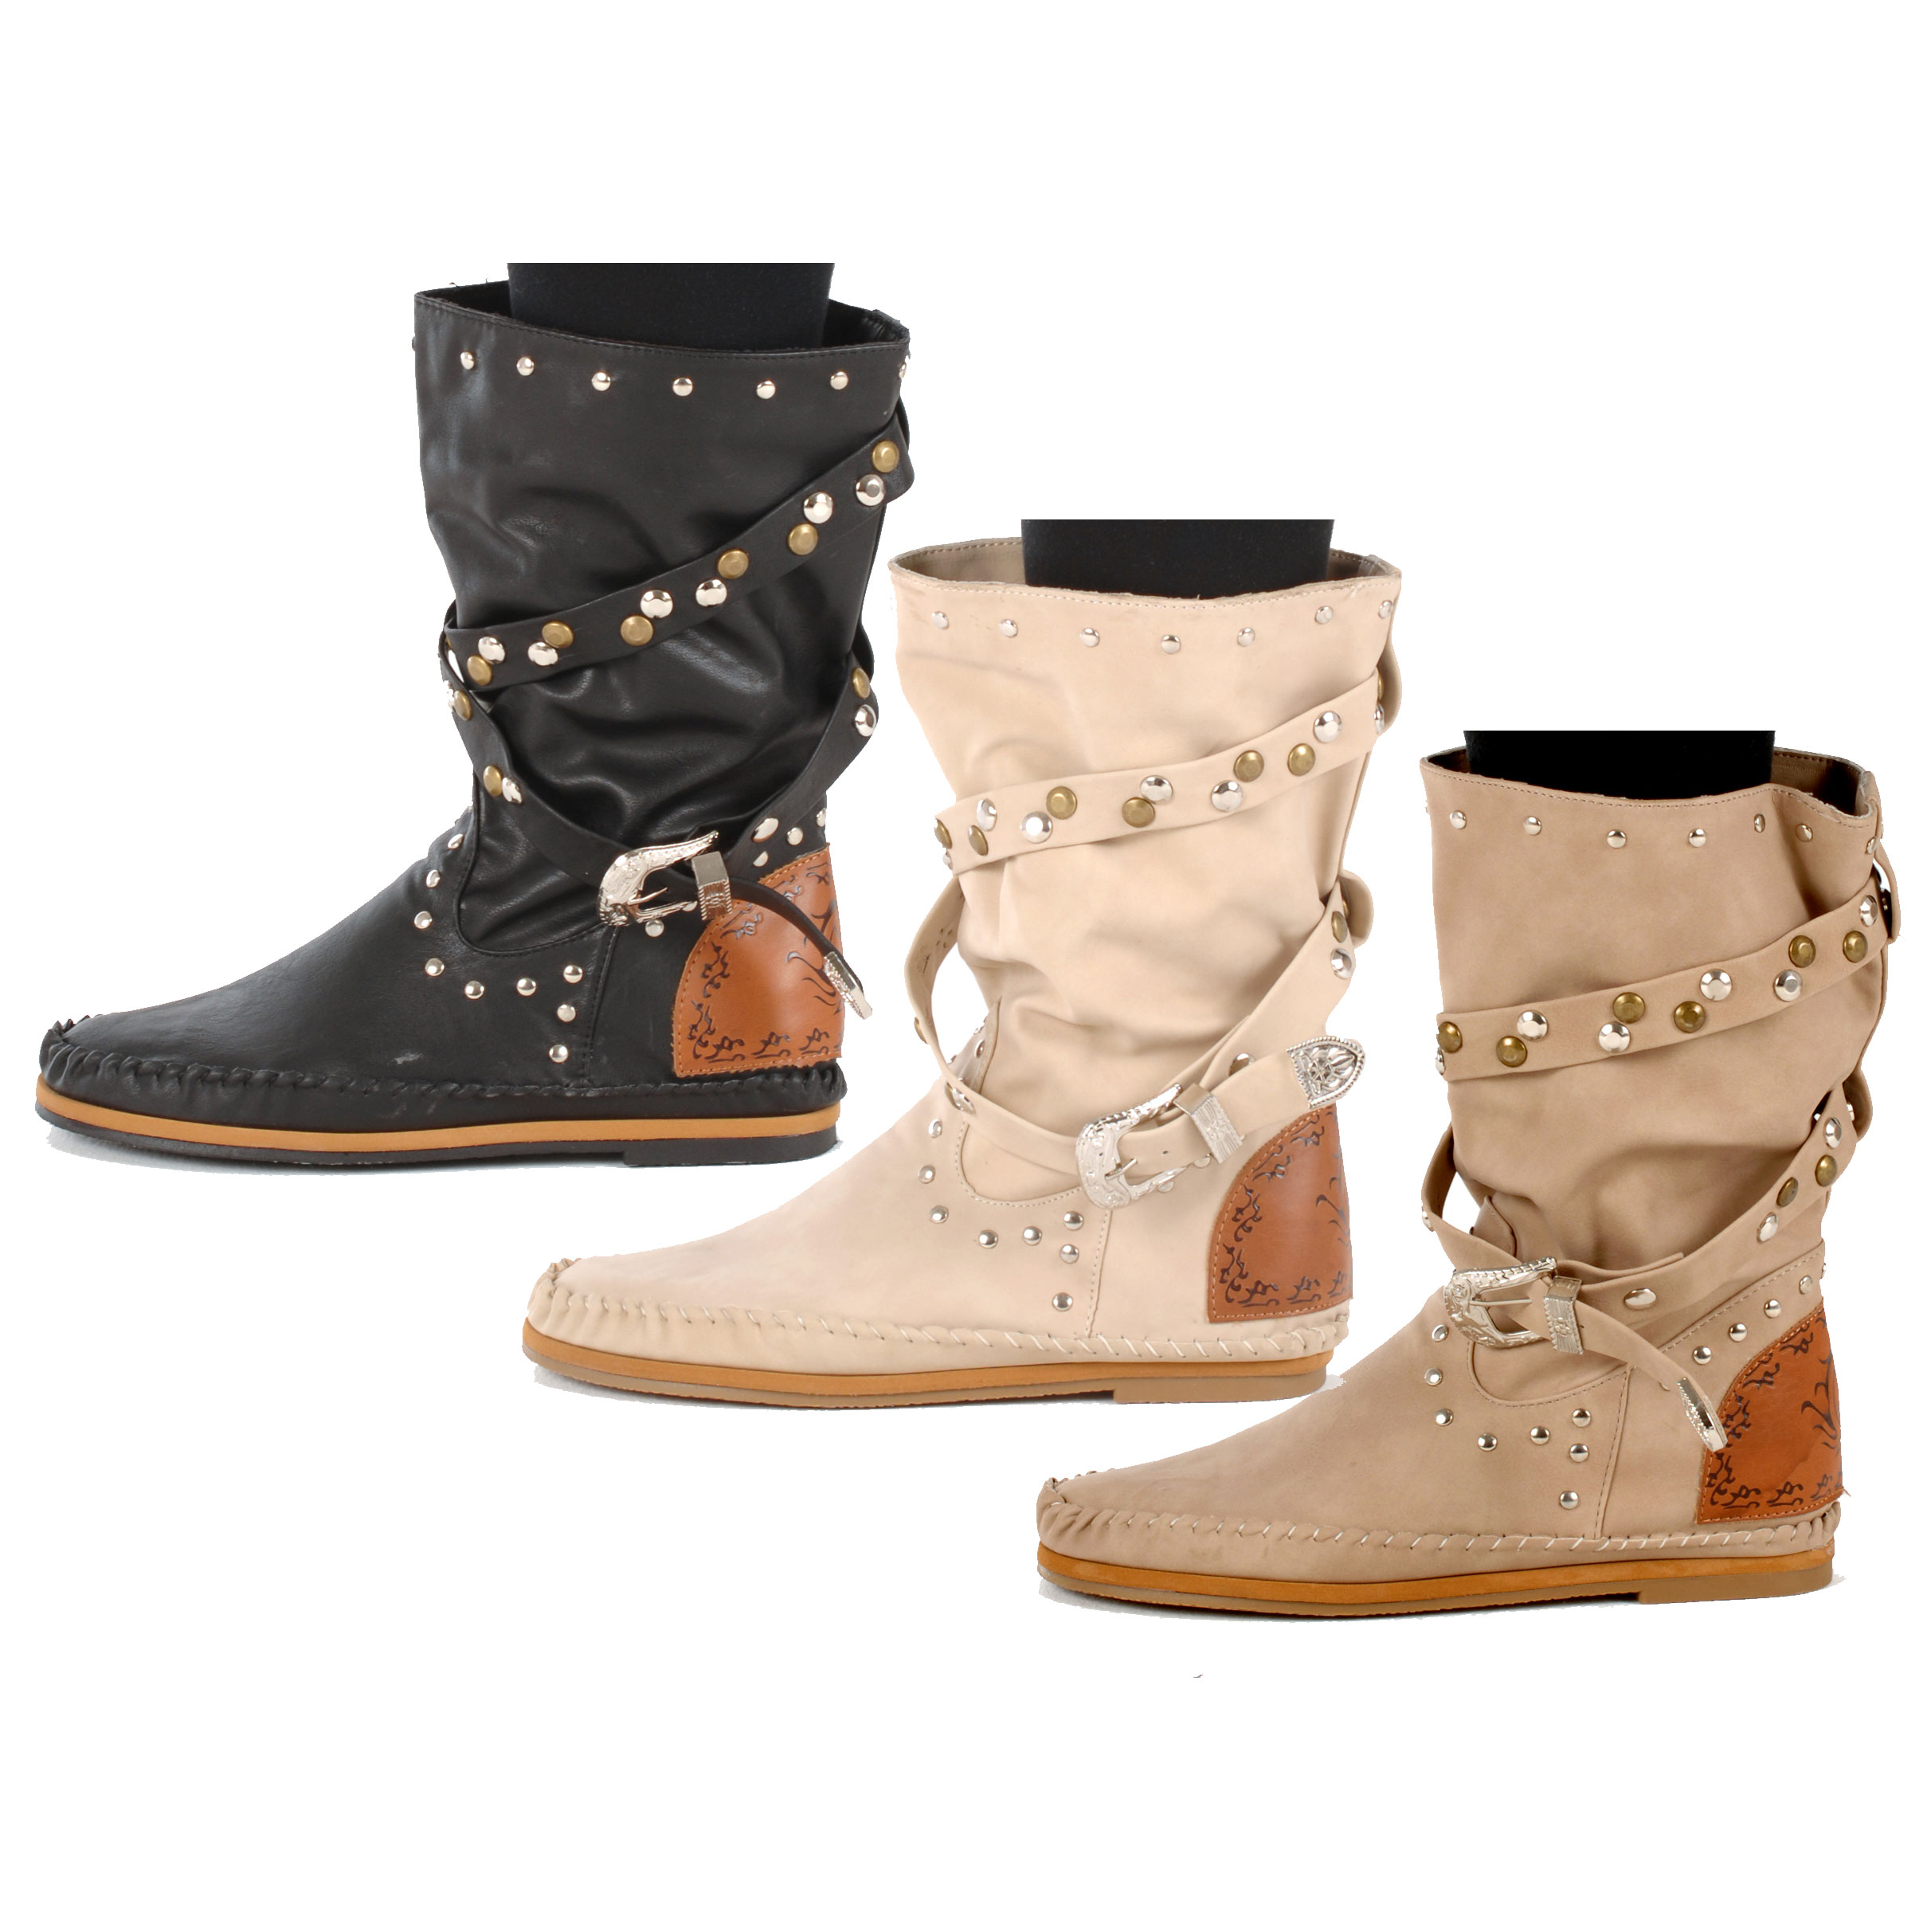 Boots For Women: Shop for Womens Boots online at best prices in India. Choose from a wide range of Boots For Women at arifvisitor.ga Get Free 1 or 2 day delivery with Amazon Prime, EMI offers, Cash on Delivery on eligible purchases.